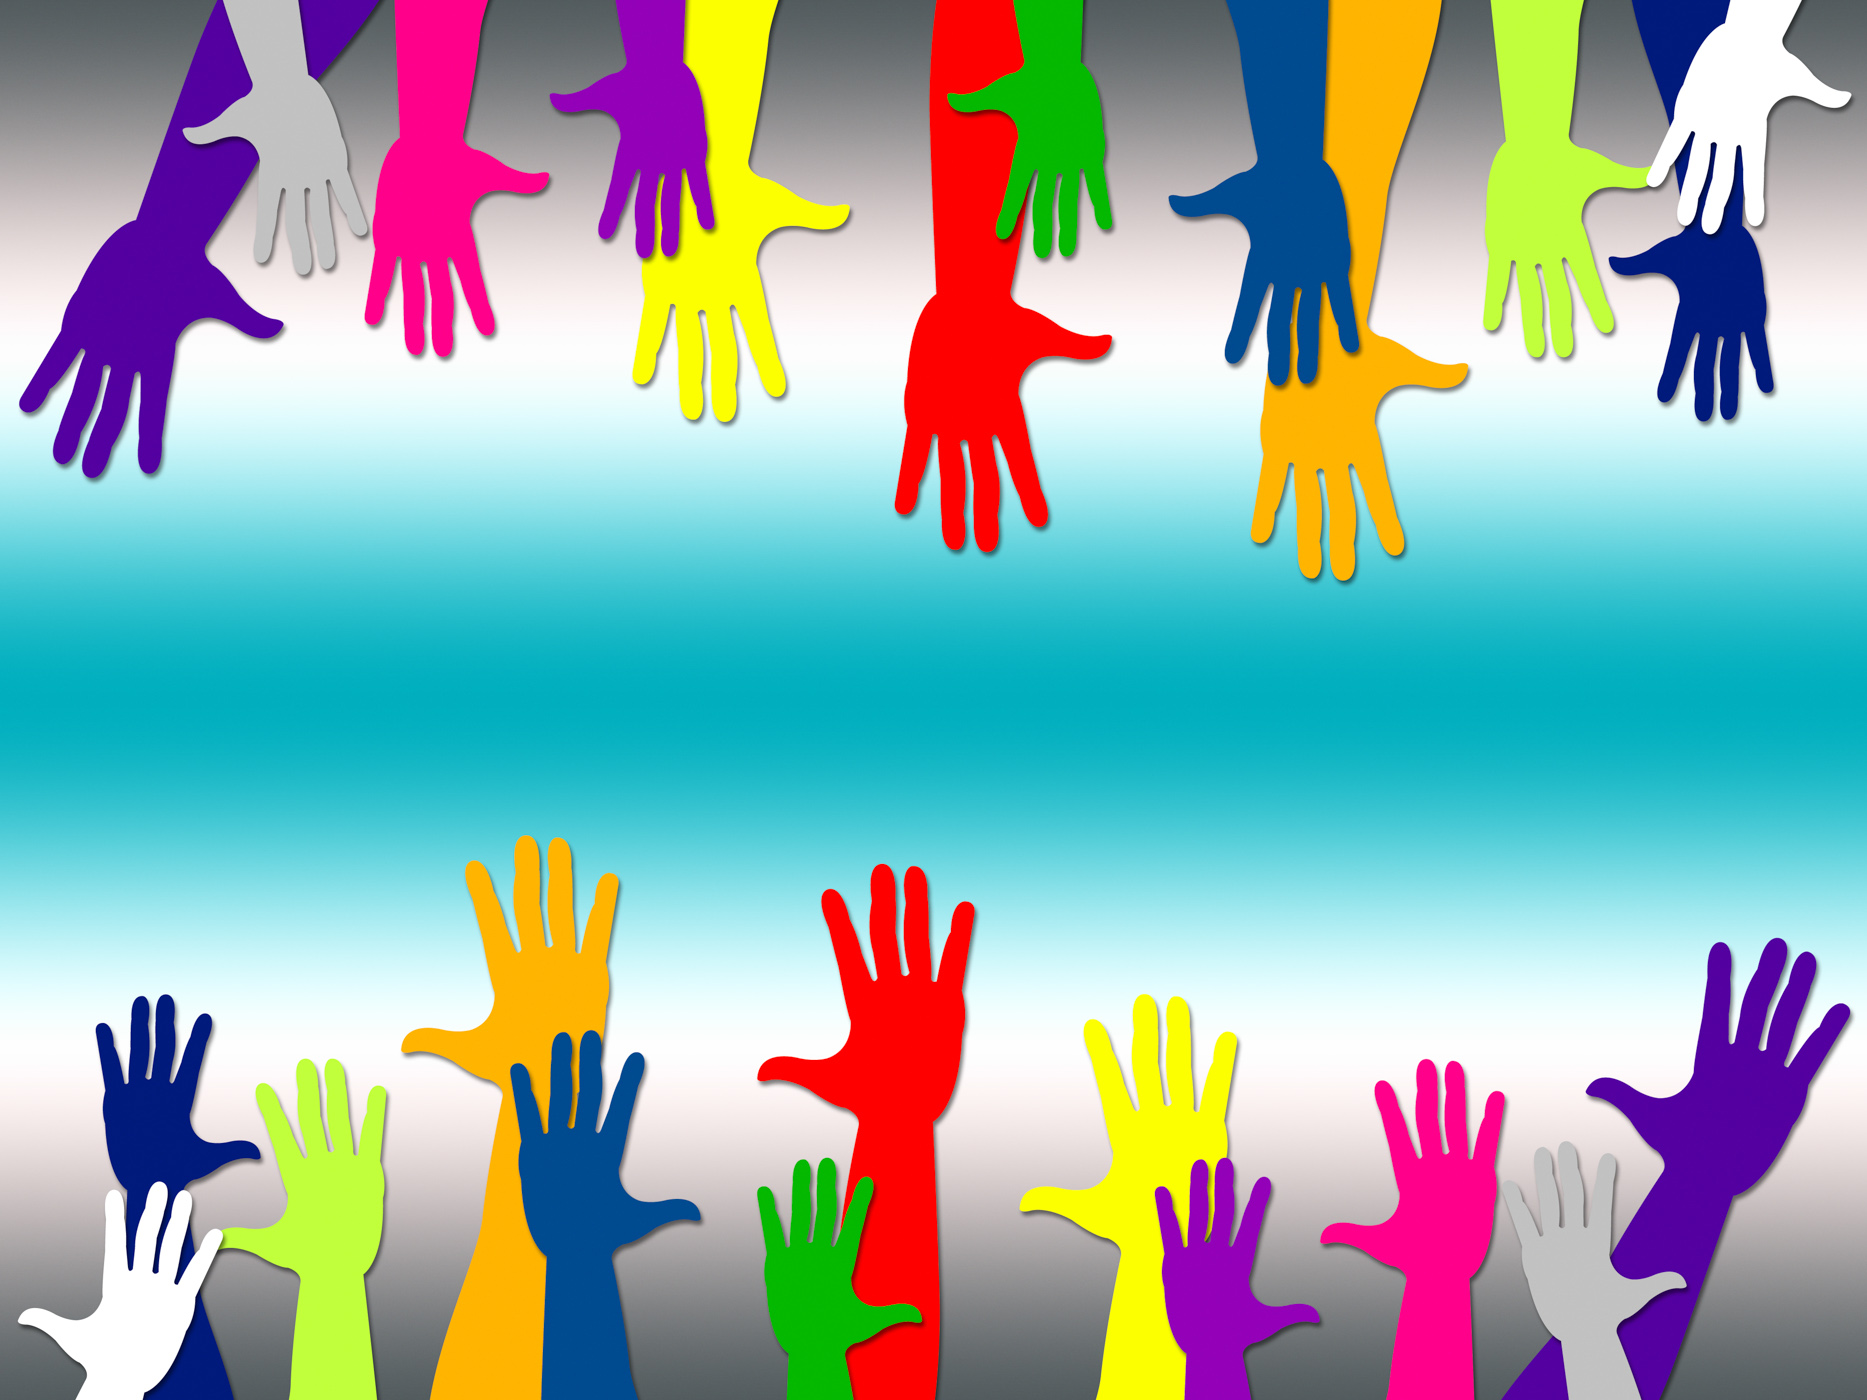 Reaching Out Represents Hands Together And Arm, Arm, Buddies, Buddy, Confidant, HQ Photo